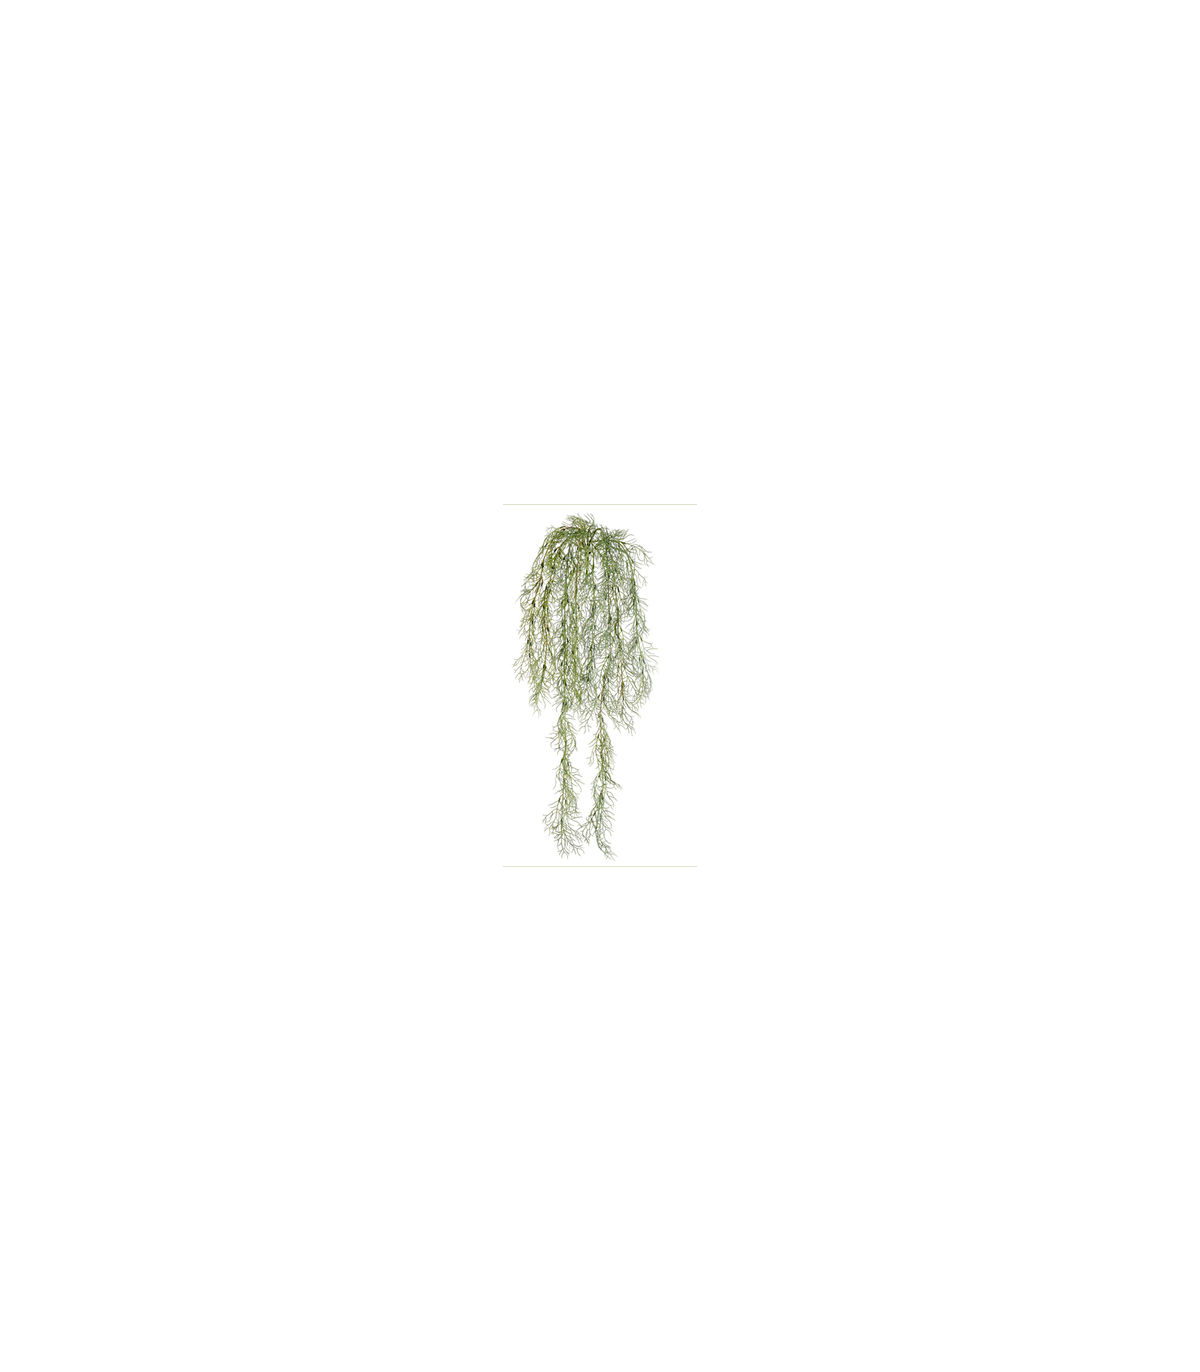 Spanish moss png. Buy online on sale